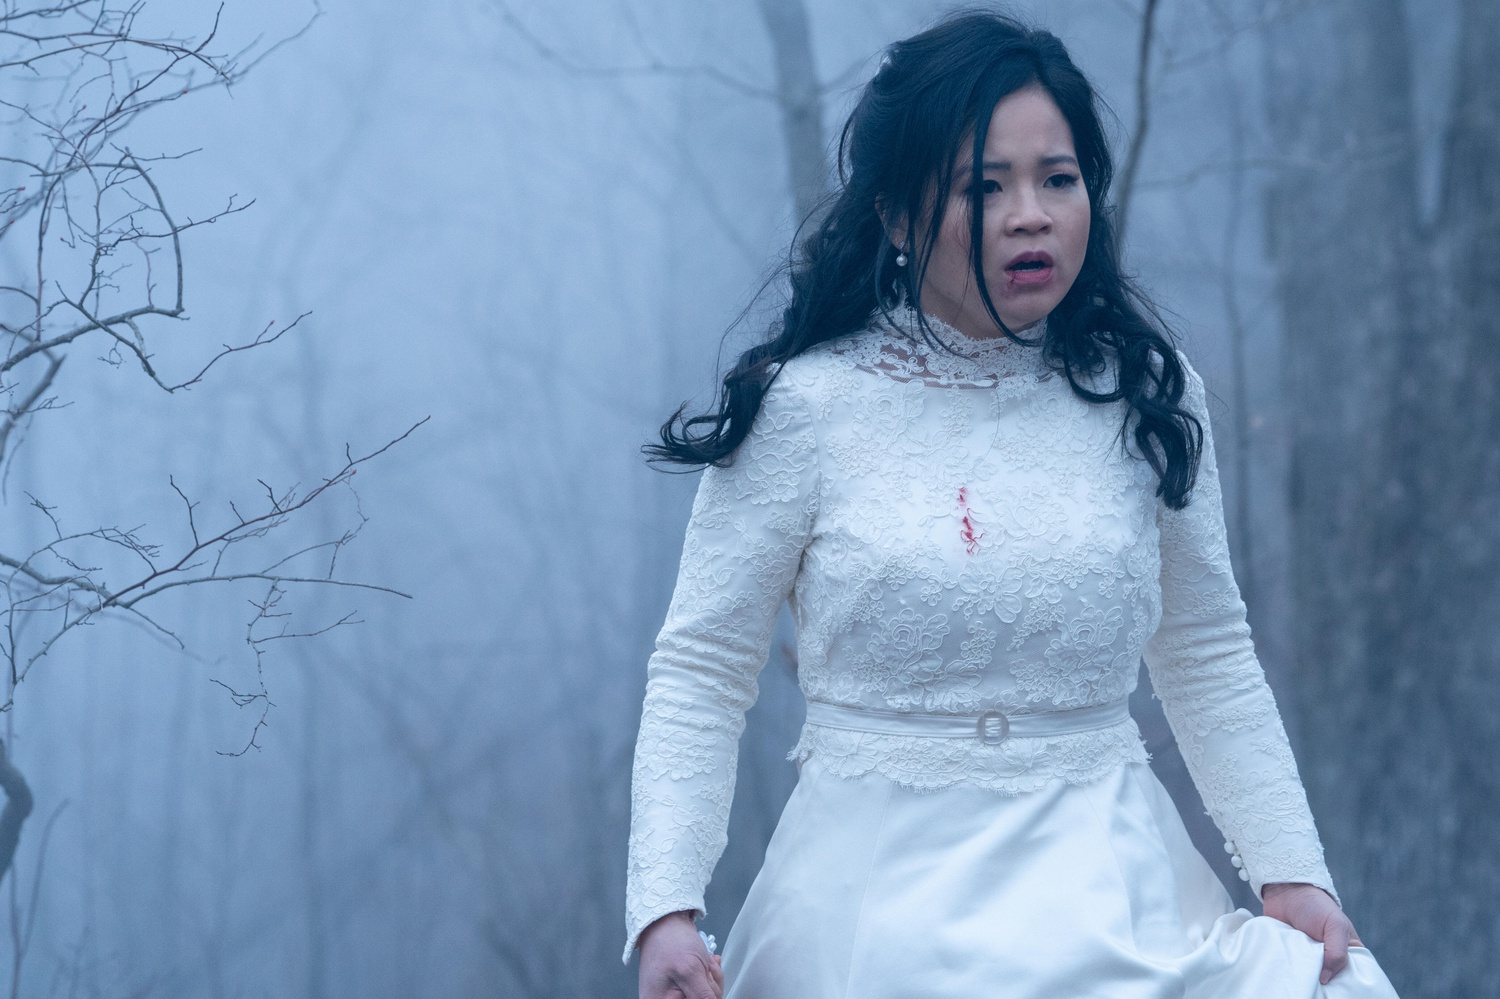 A neglected daughter longs for another life. Lauren Mills (Kelly Marie Tran), shown.